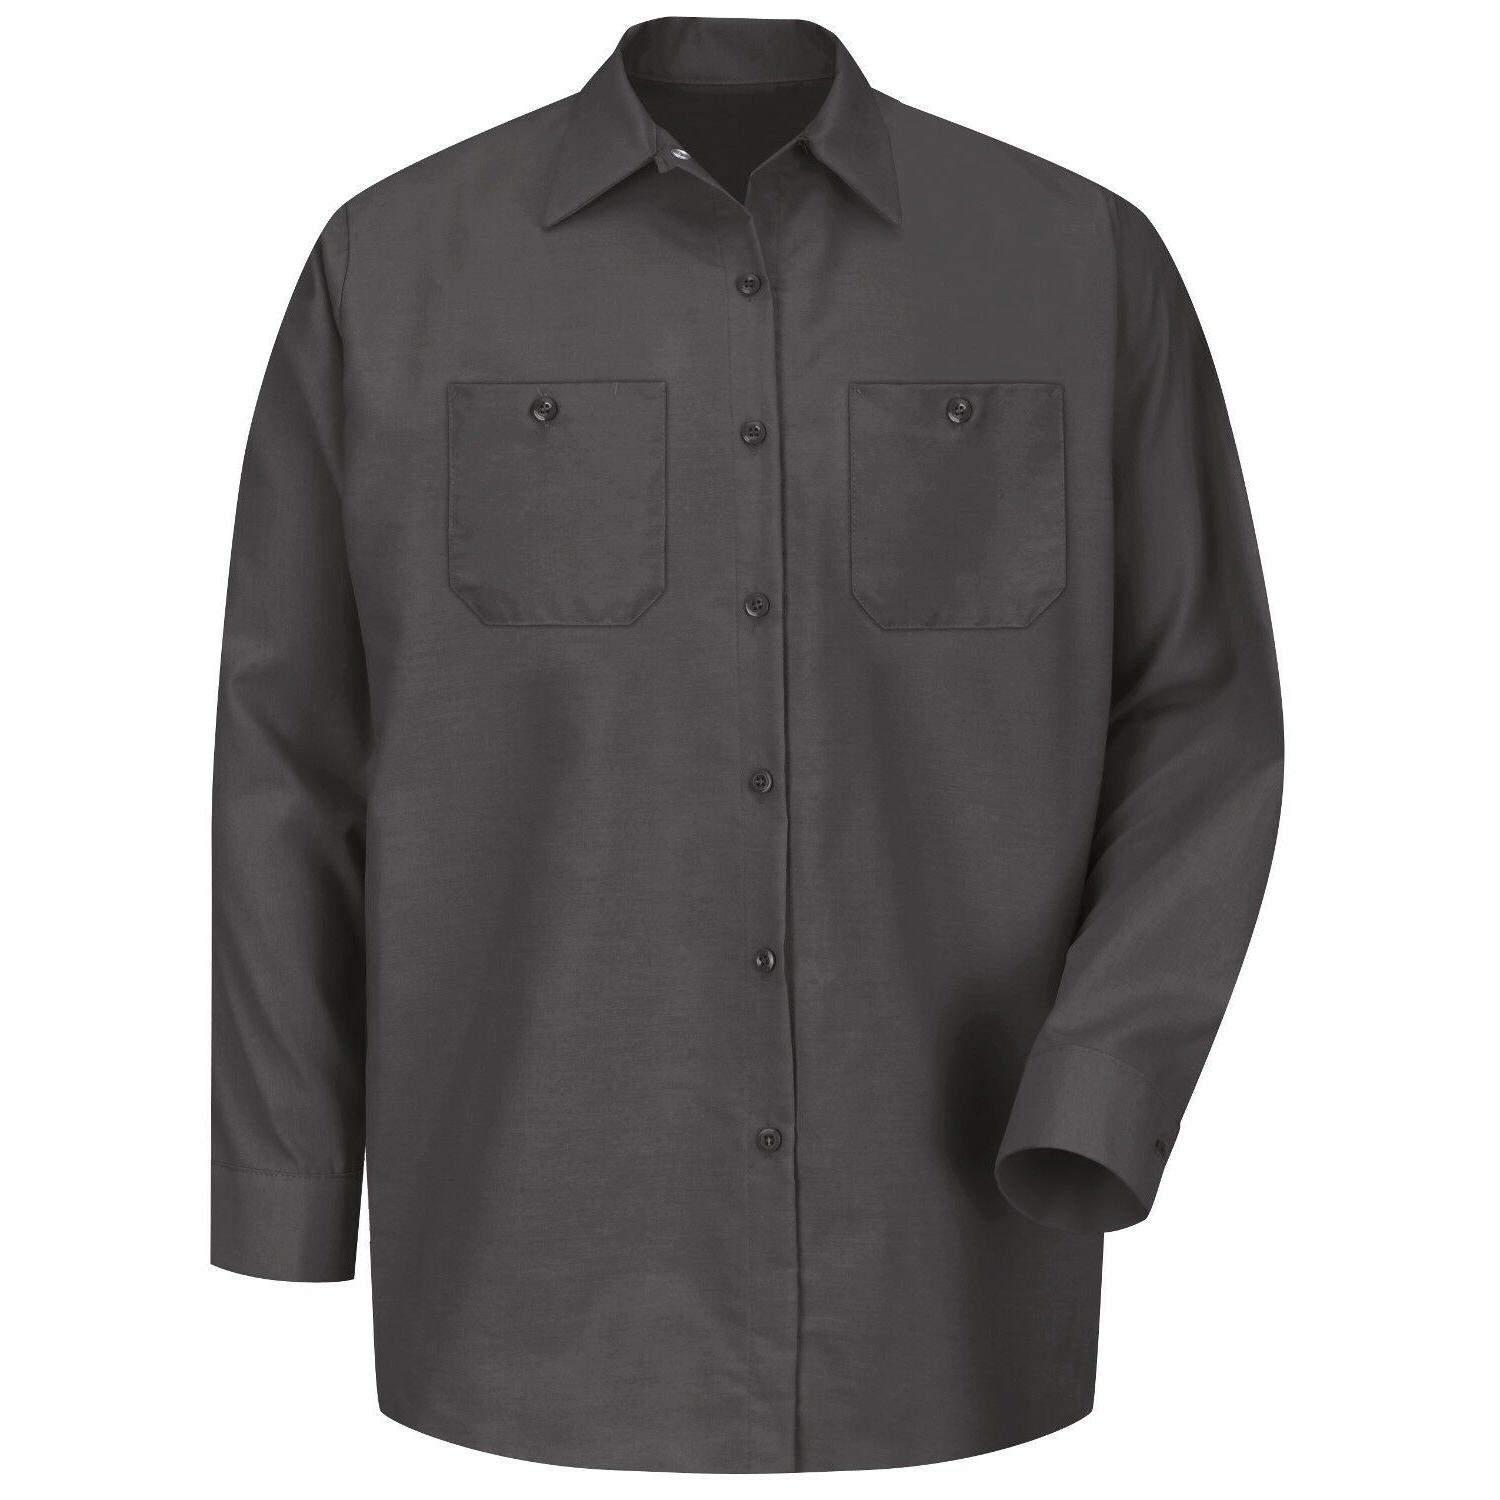 mens long sleeve industrial work shirt charcoal